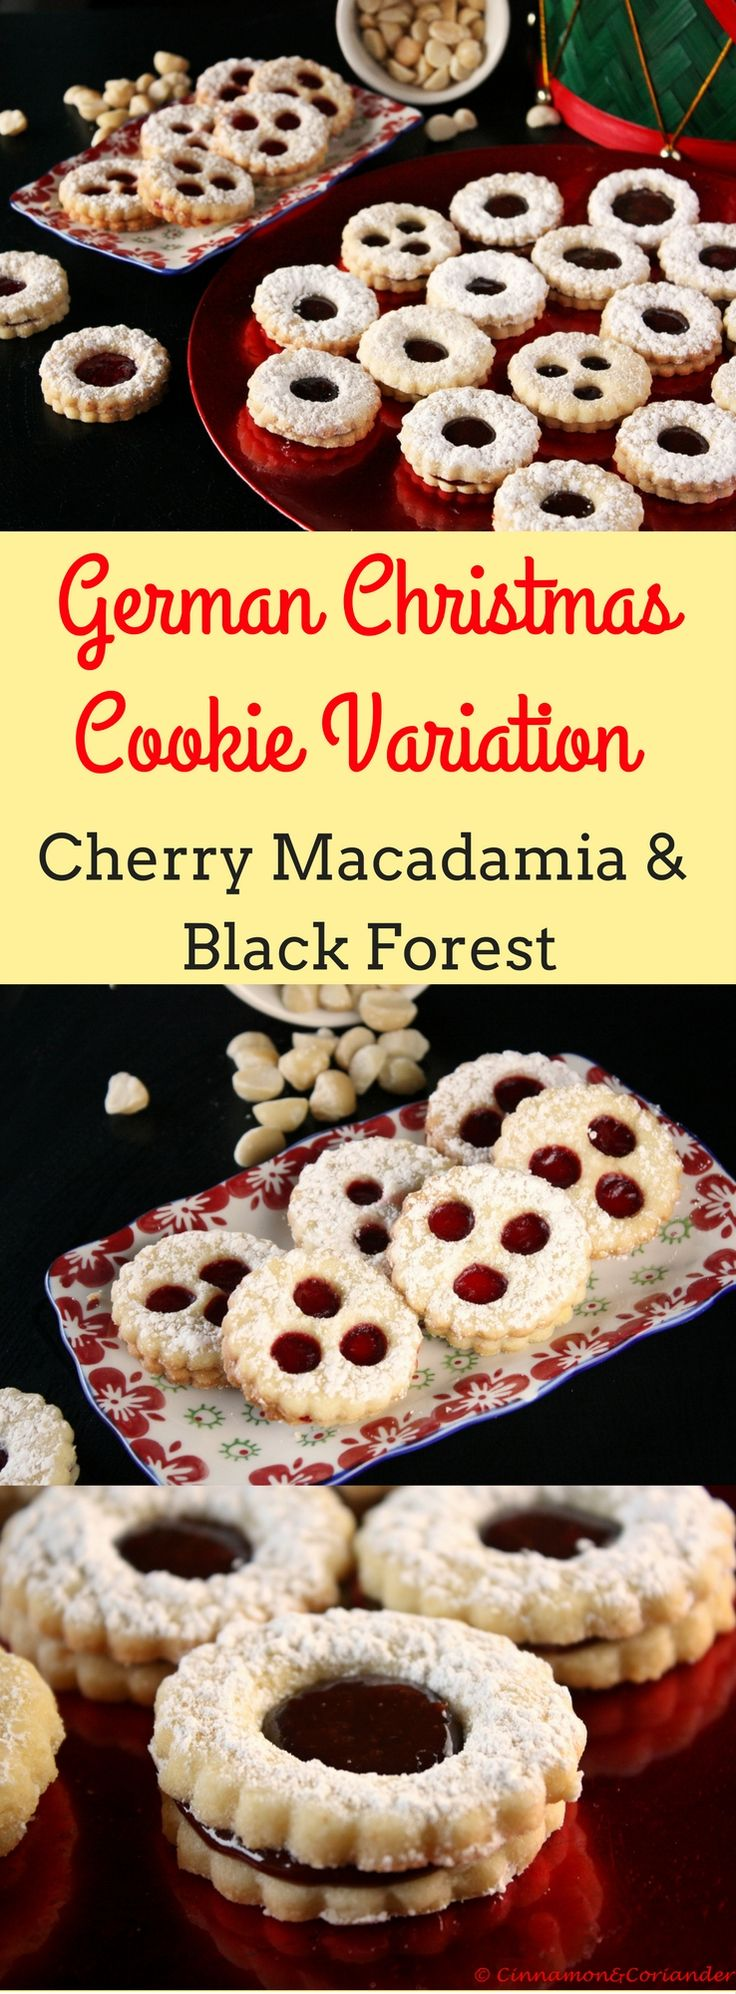 Spitzbuben Traditional German Christmas Cookies with Black Forest Filling or Macadamia Cherry Filling